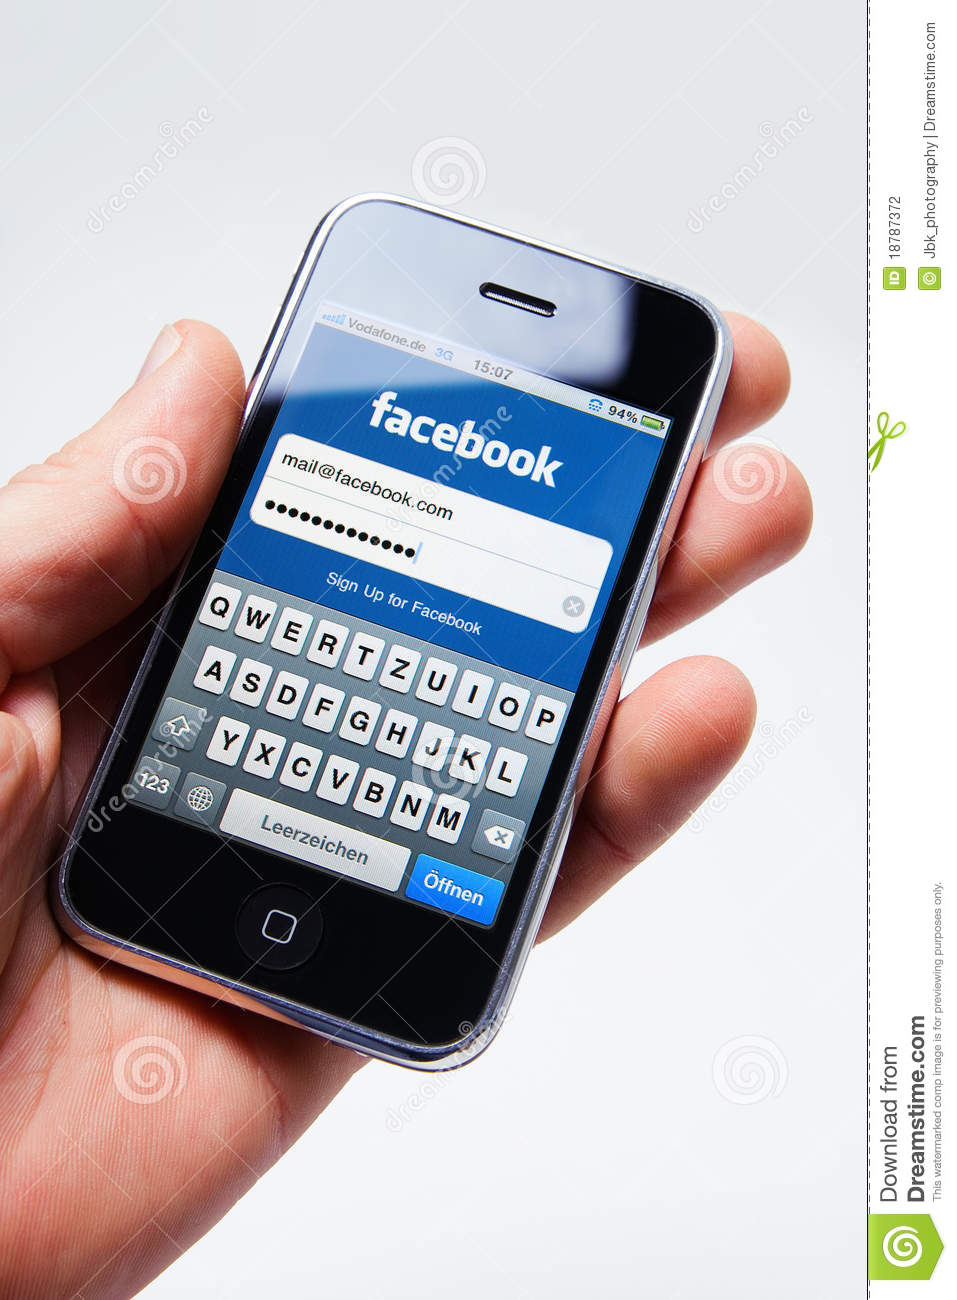 Facebook Log In On Apple Iphone Editorial Photography